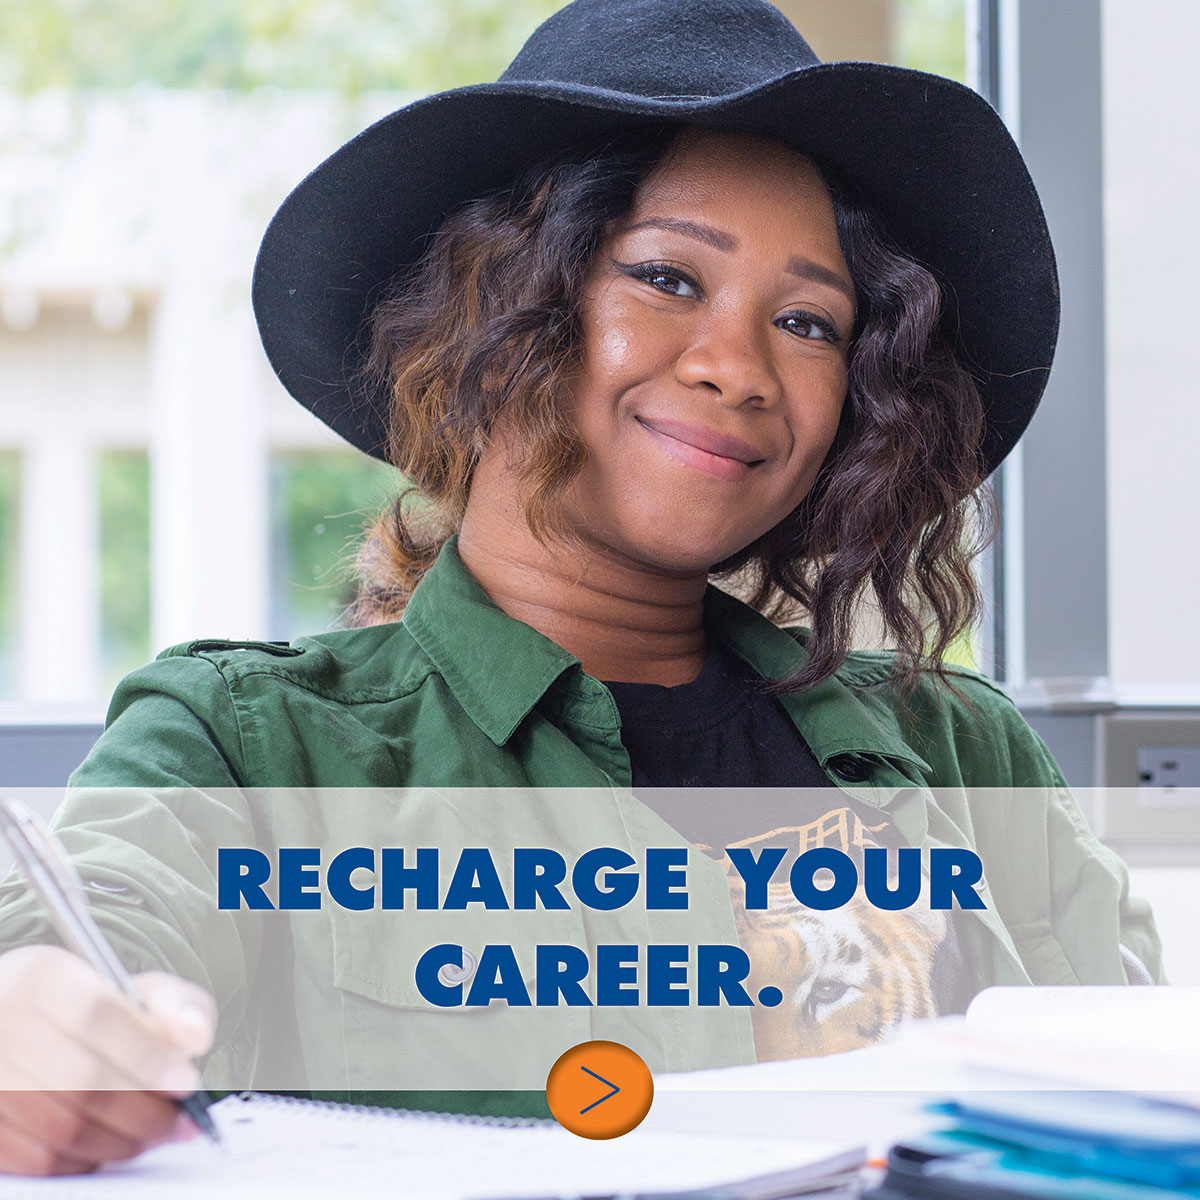 Weekend and night classes for adult learners... Recharge your career. Need to work while you take classes? You can do that!